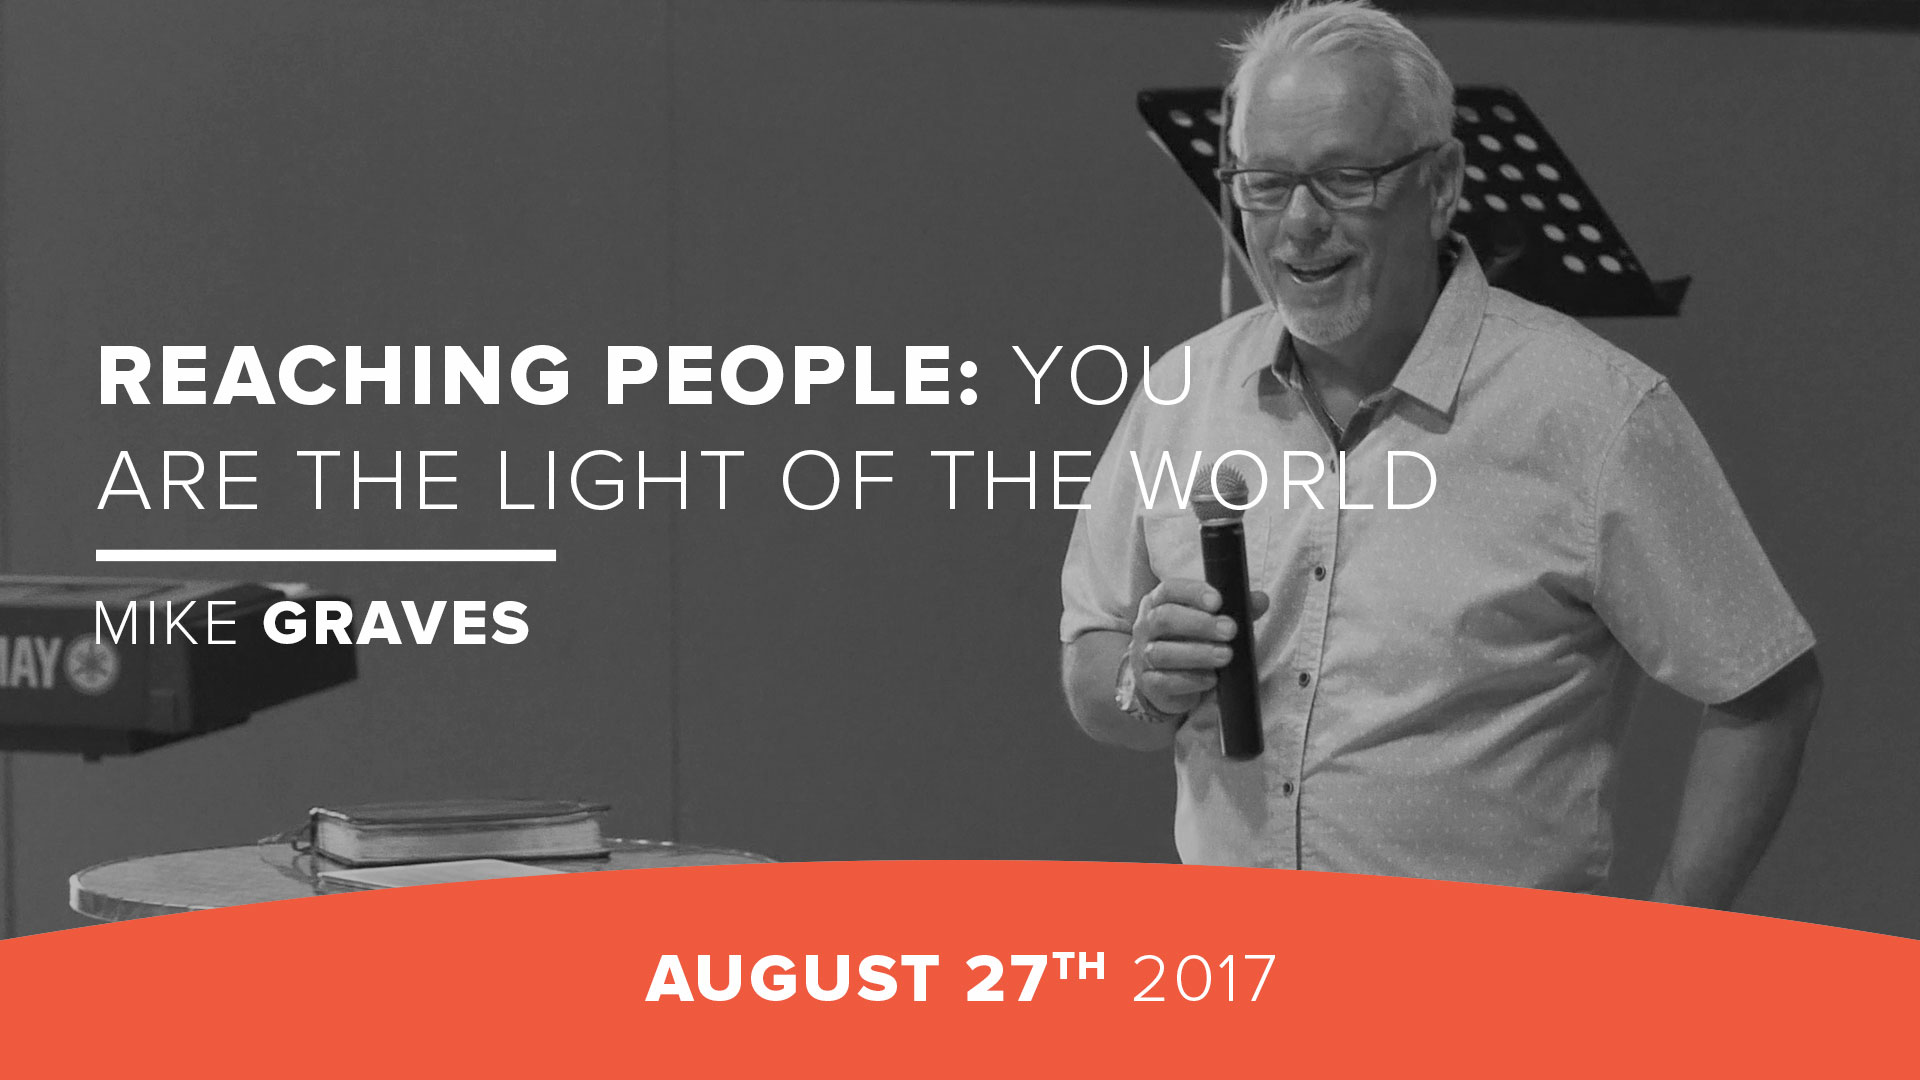 Reaching People: You are the light of the world